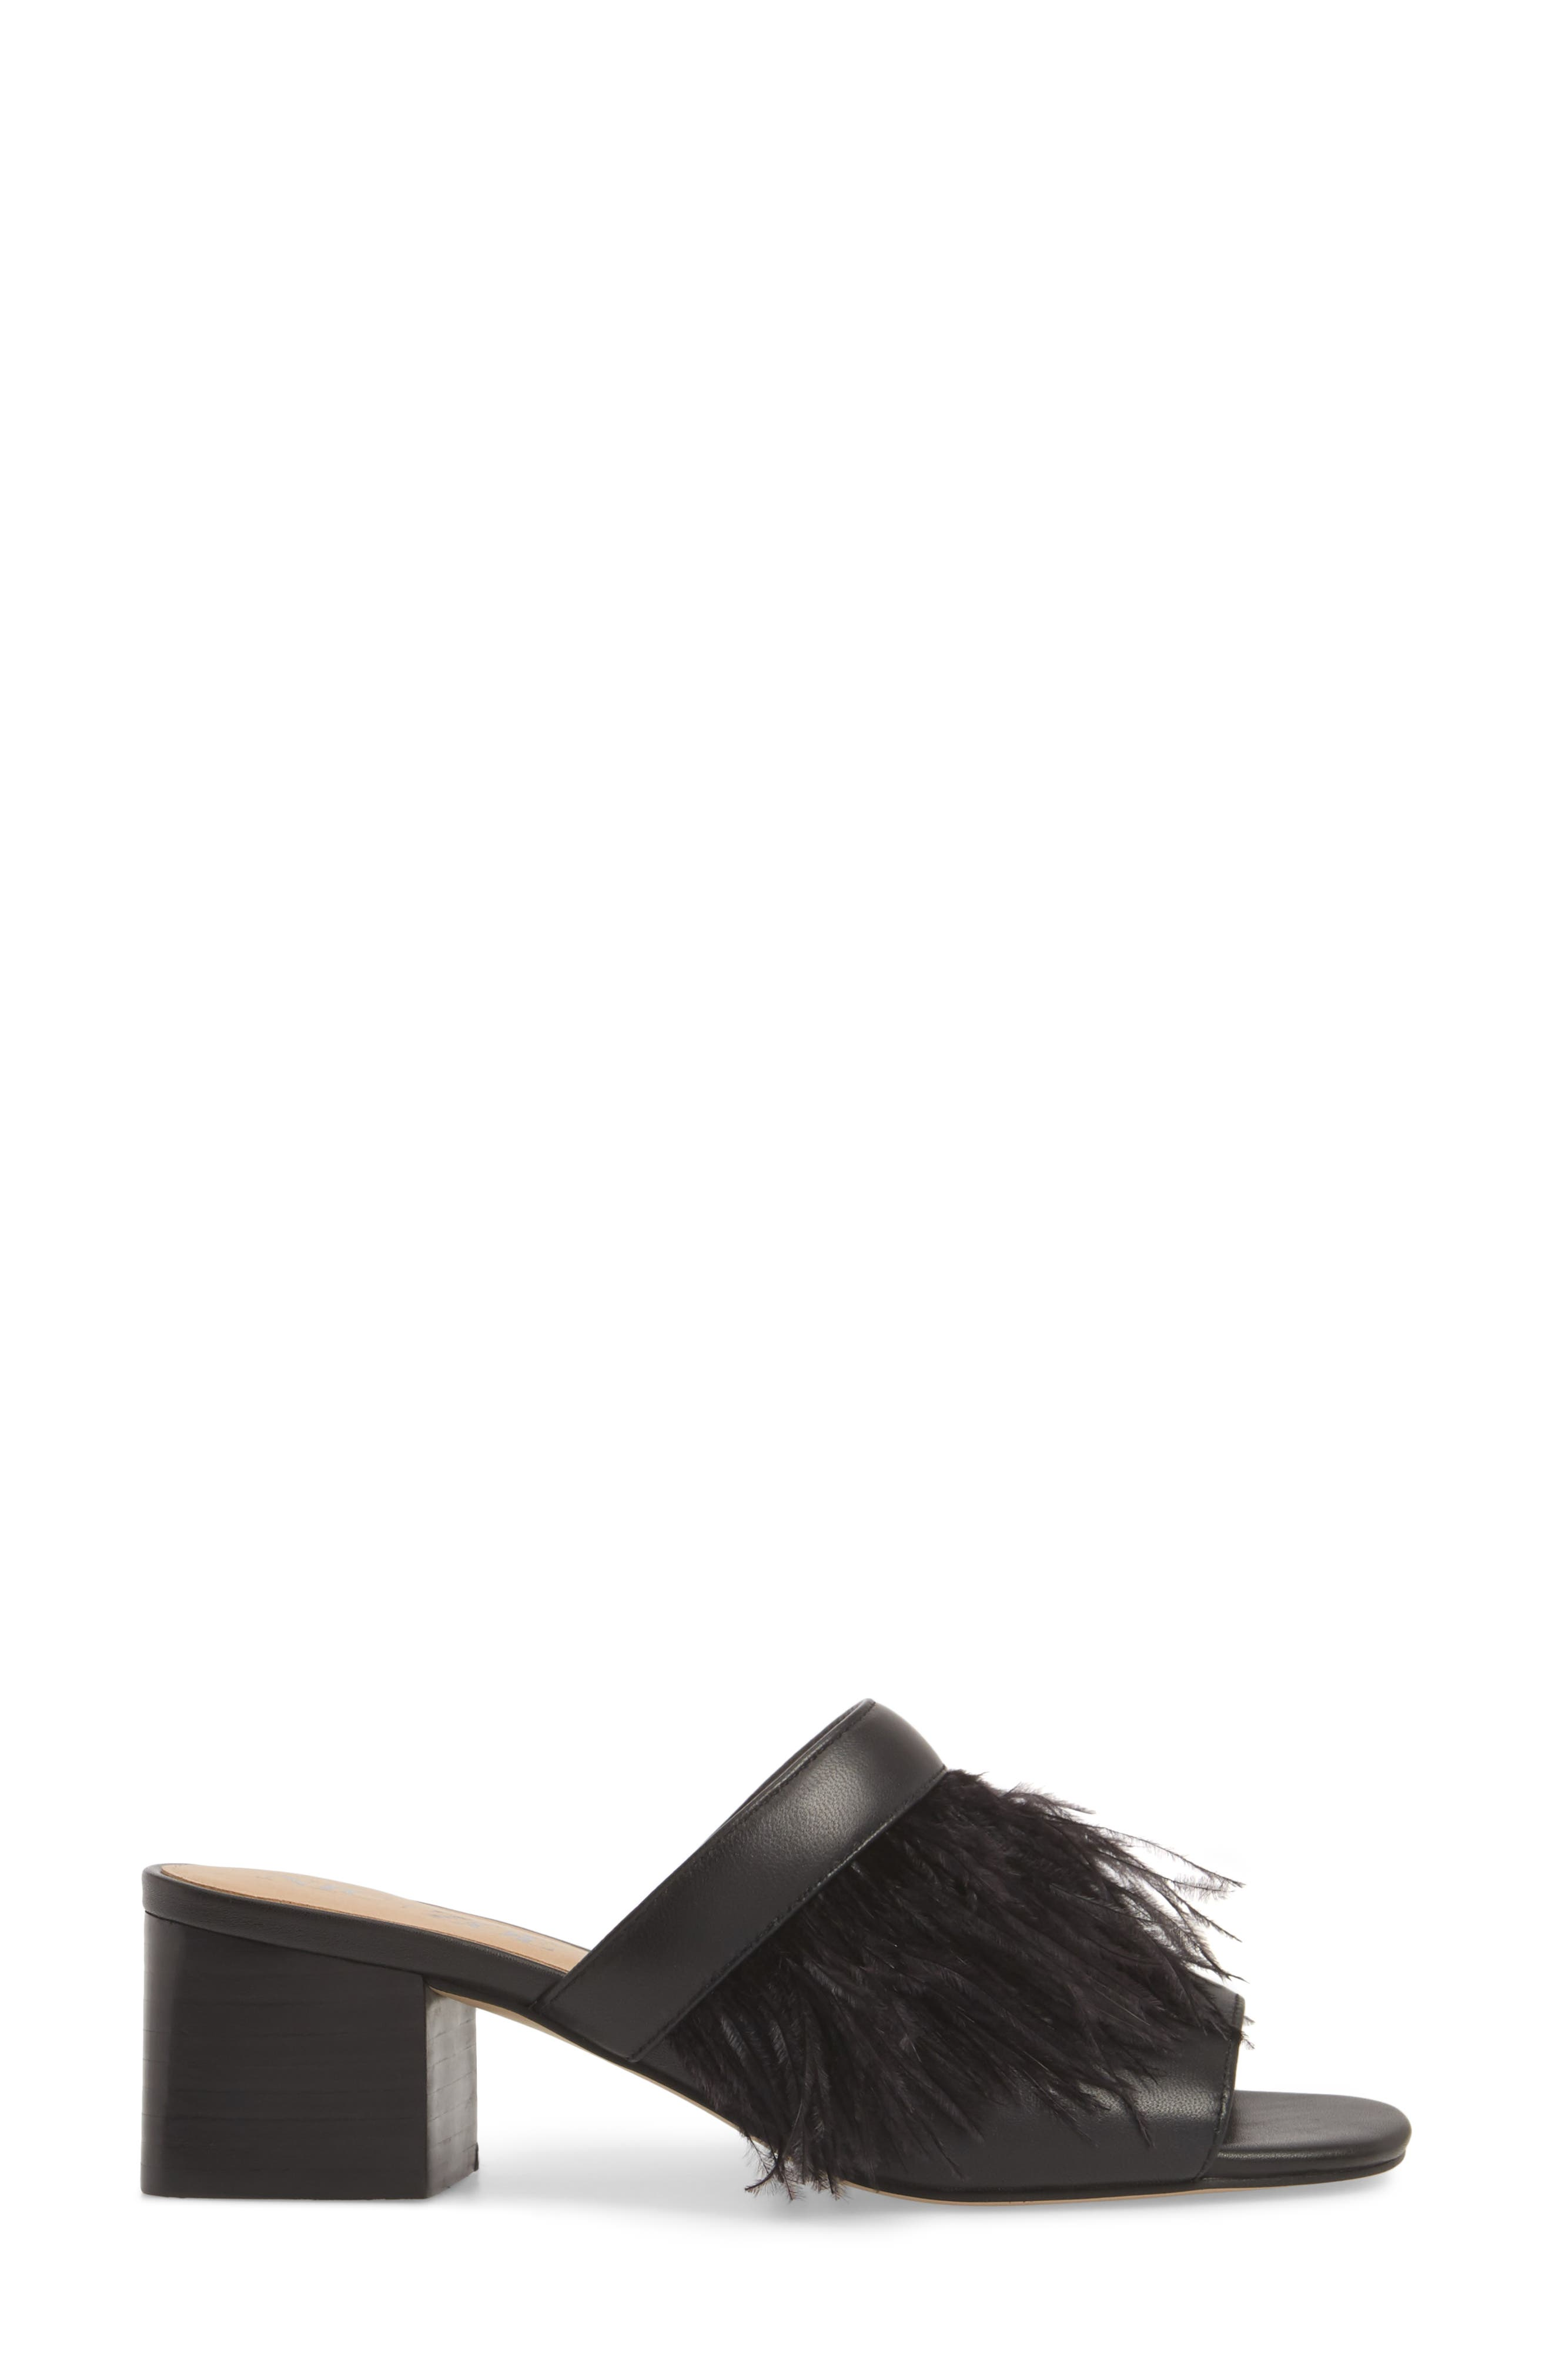 NIC + ZOE Feather Mule,                             Alternate thumbnail 3, color,                             BLACK LEATHER